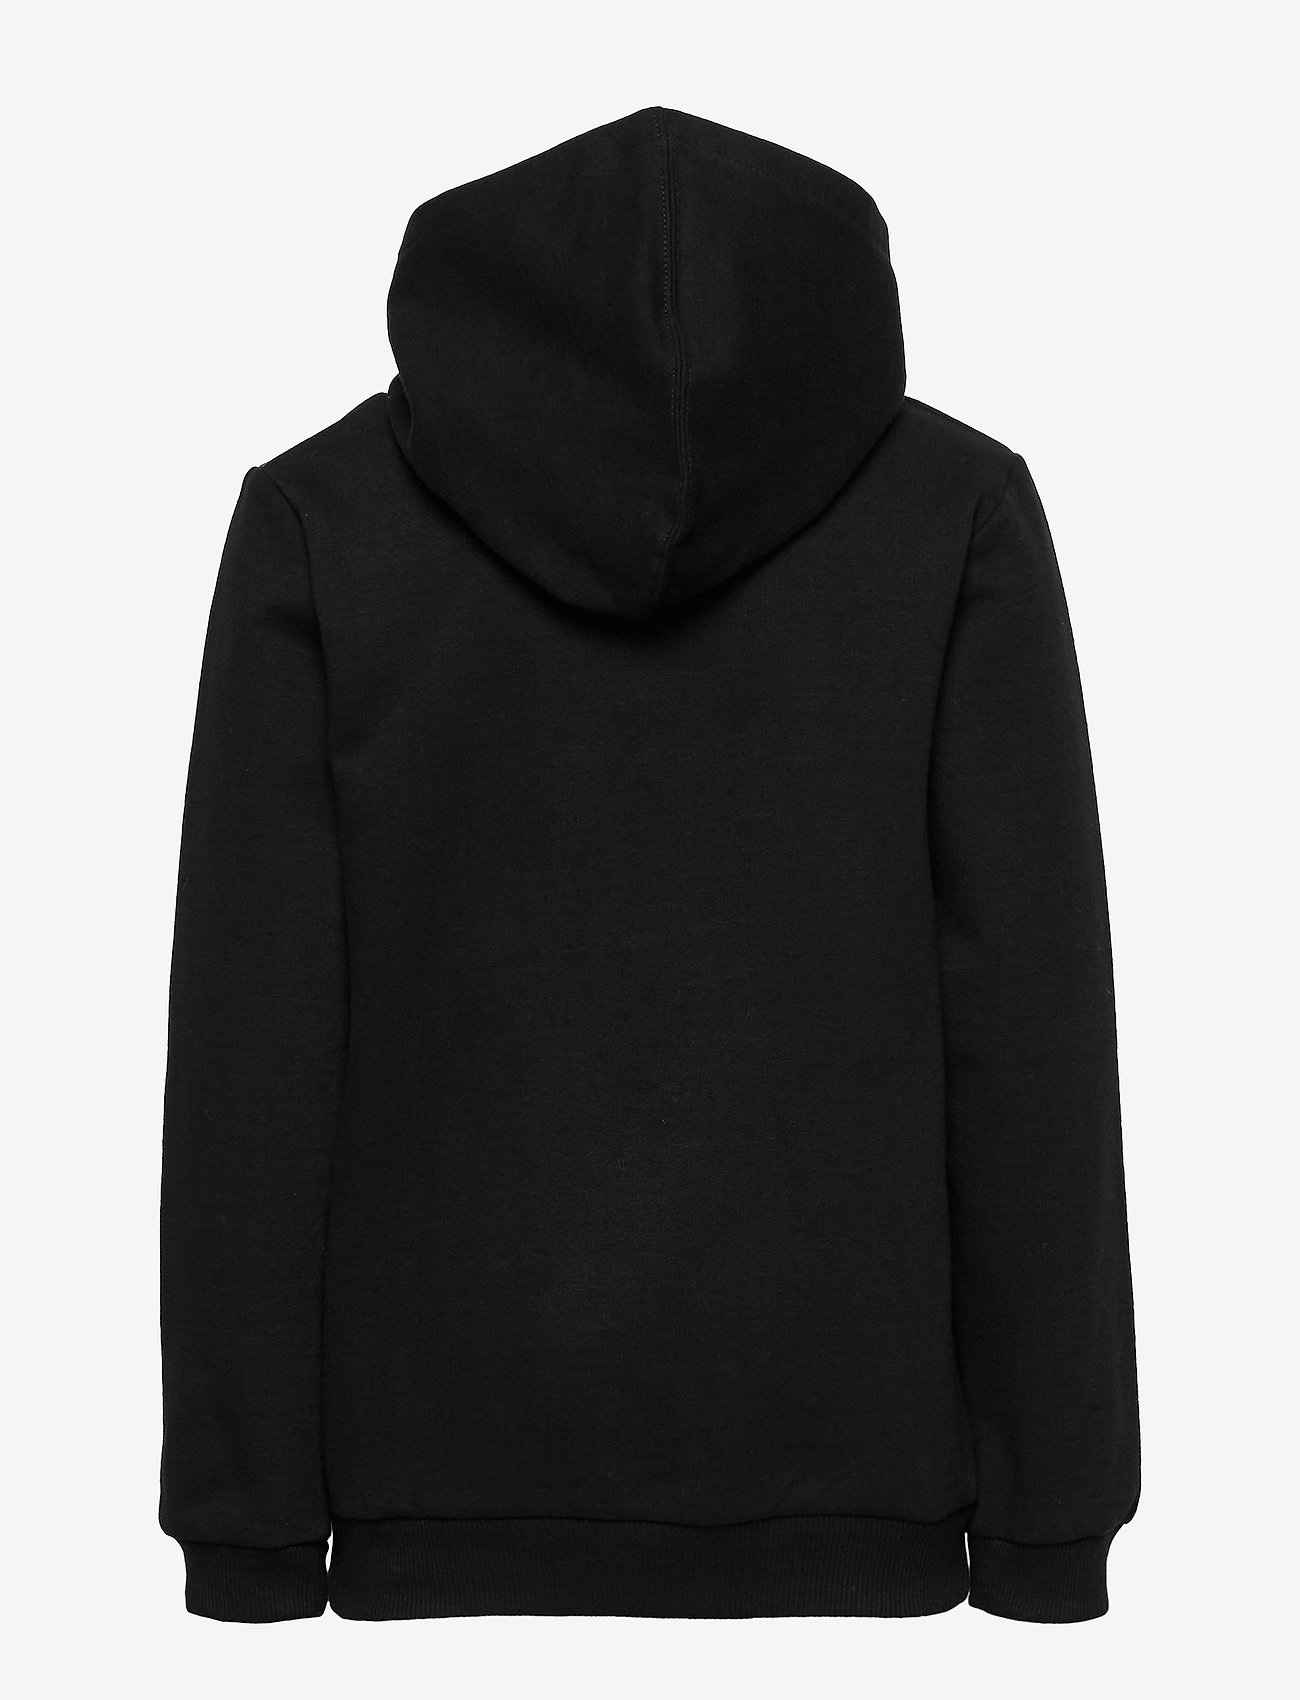 Levi's - SWEAT SHIRT - hoodies - black - 1